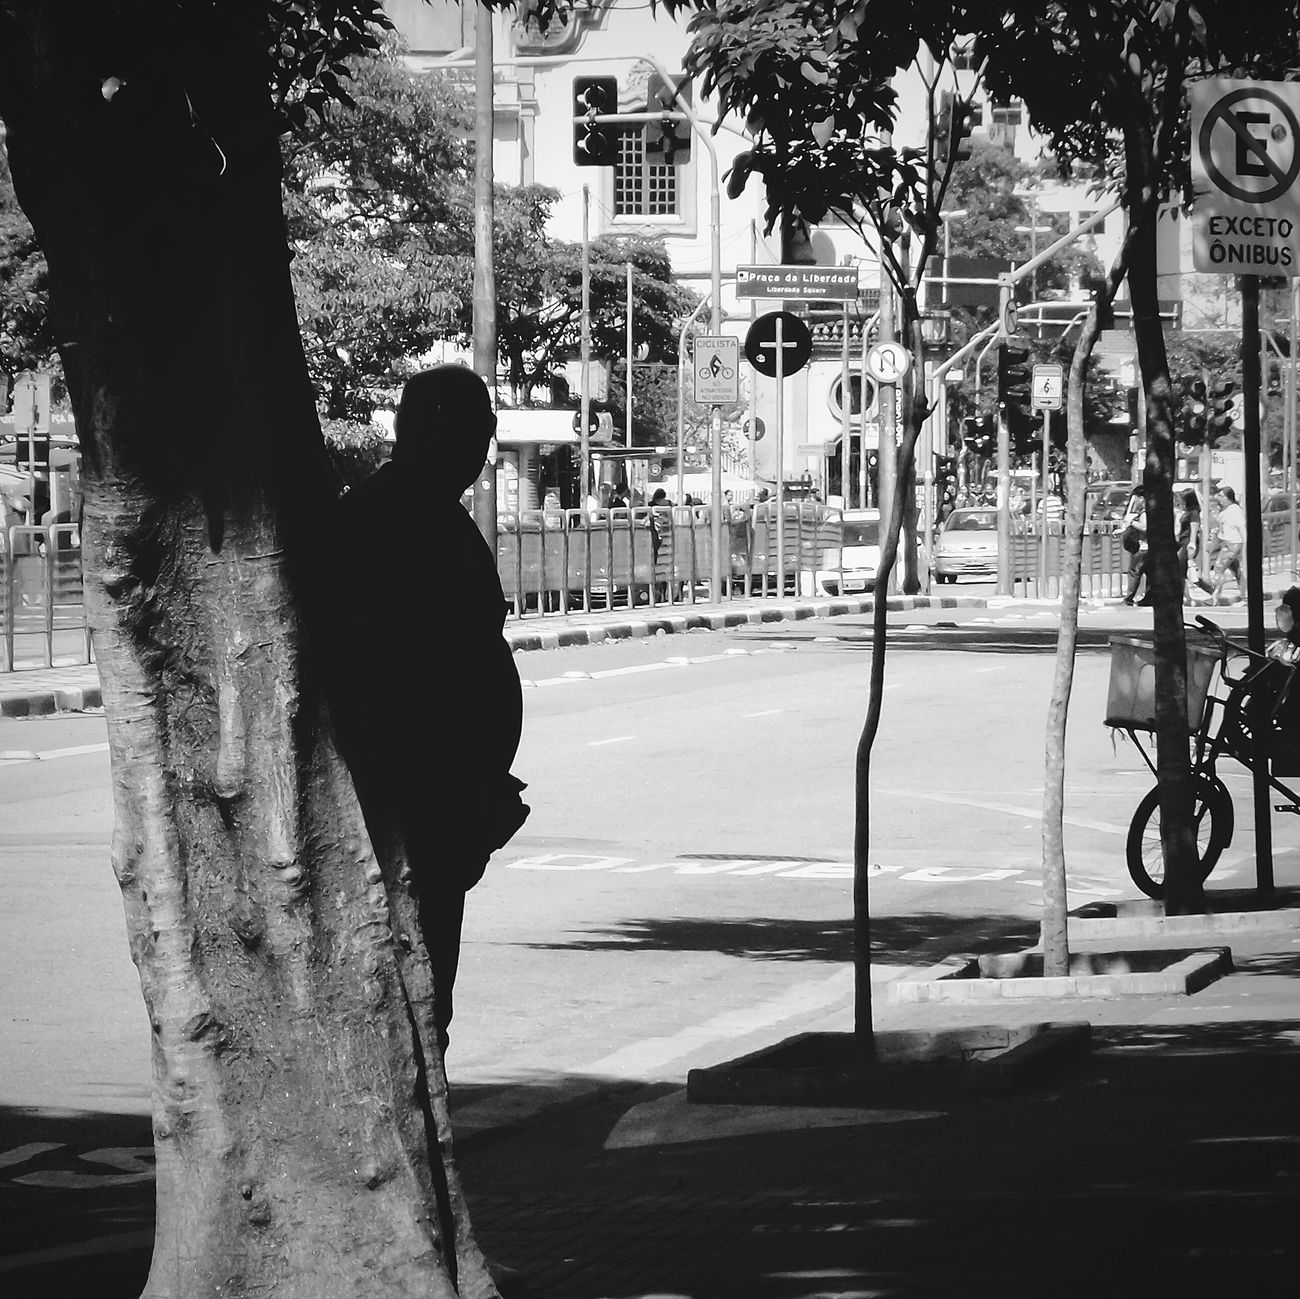 the shadow Open Edit Rule Of Thirds Shadow Streetphotography Streetphoto_bw Street Photography EyeEm Best Shots The Street Photographer - 2015 EyeEm Awards Darkness And Light Untold Stories